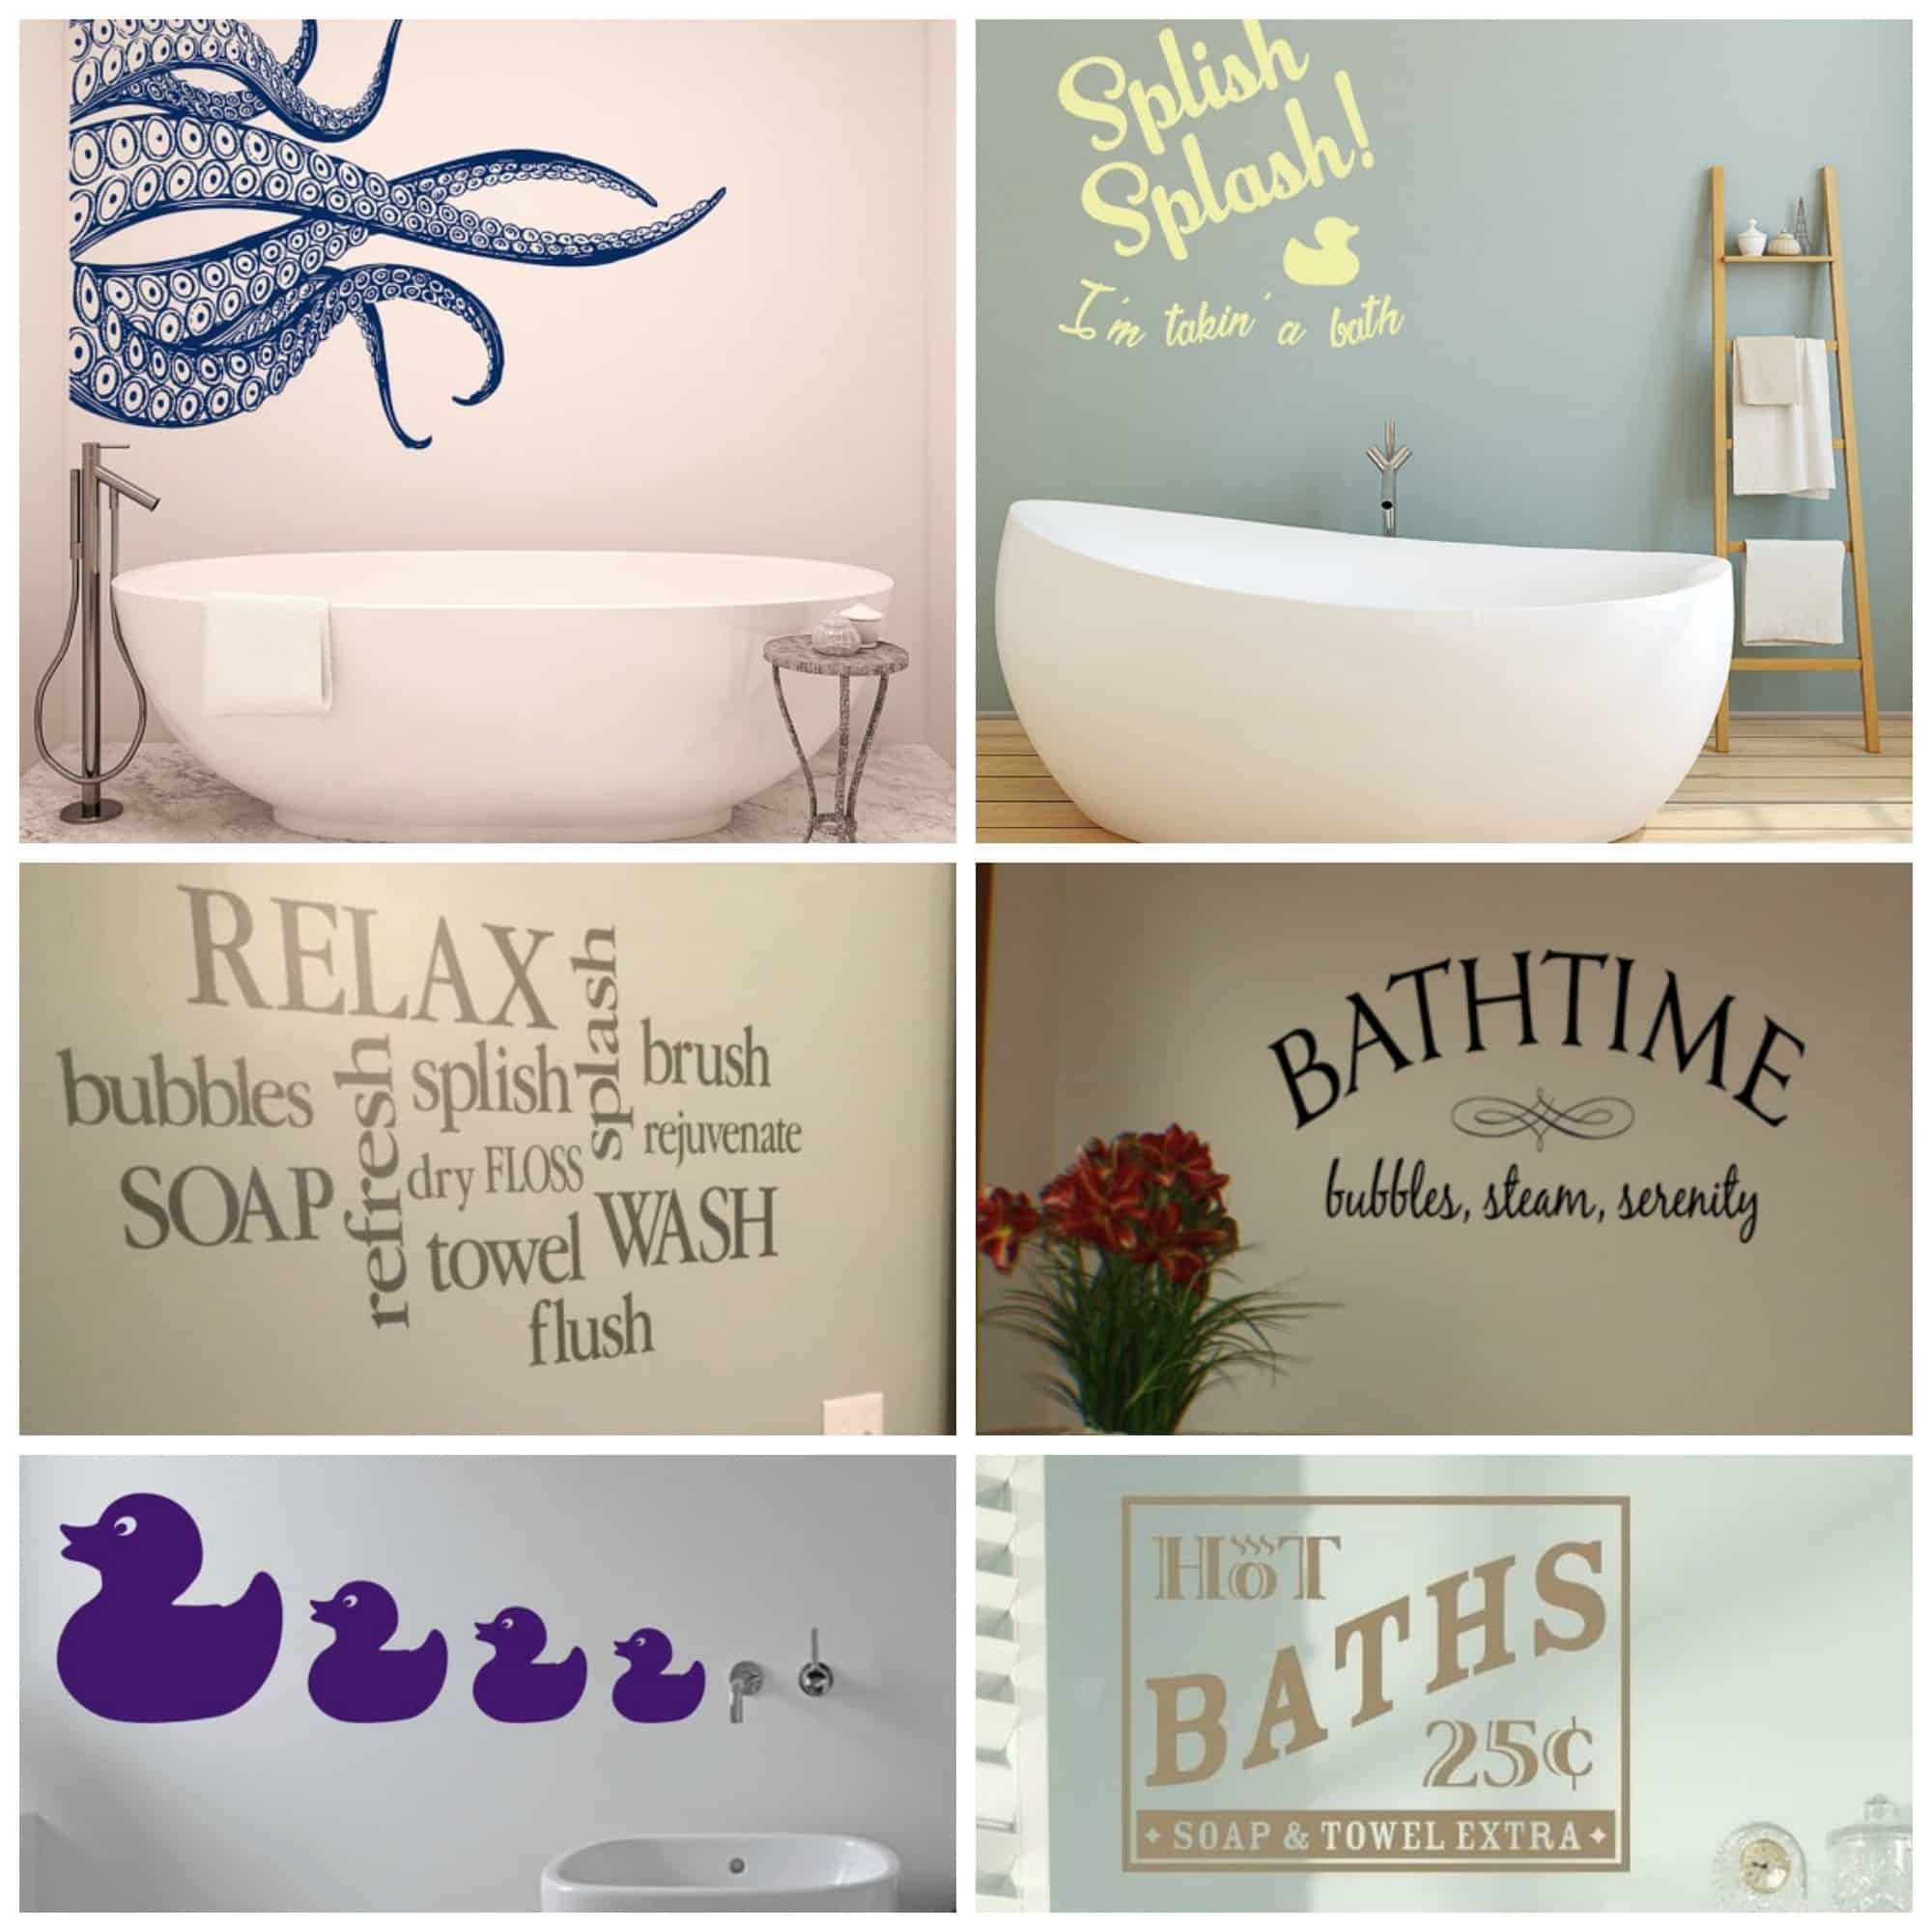 from MirrorIn, Adnil Creations, Wild Eyes Signs, Trading Phrases,, and Tweet Heart Wall Art